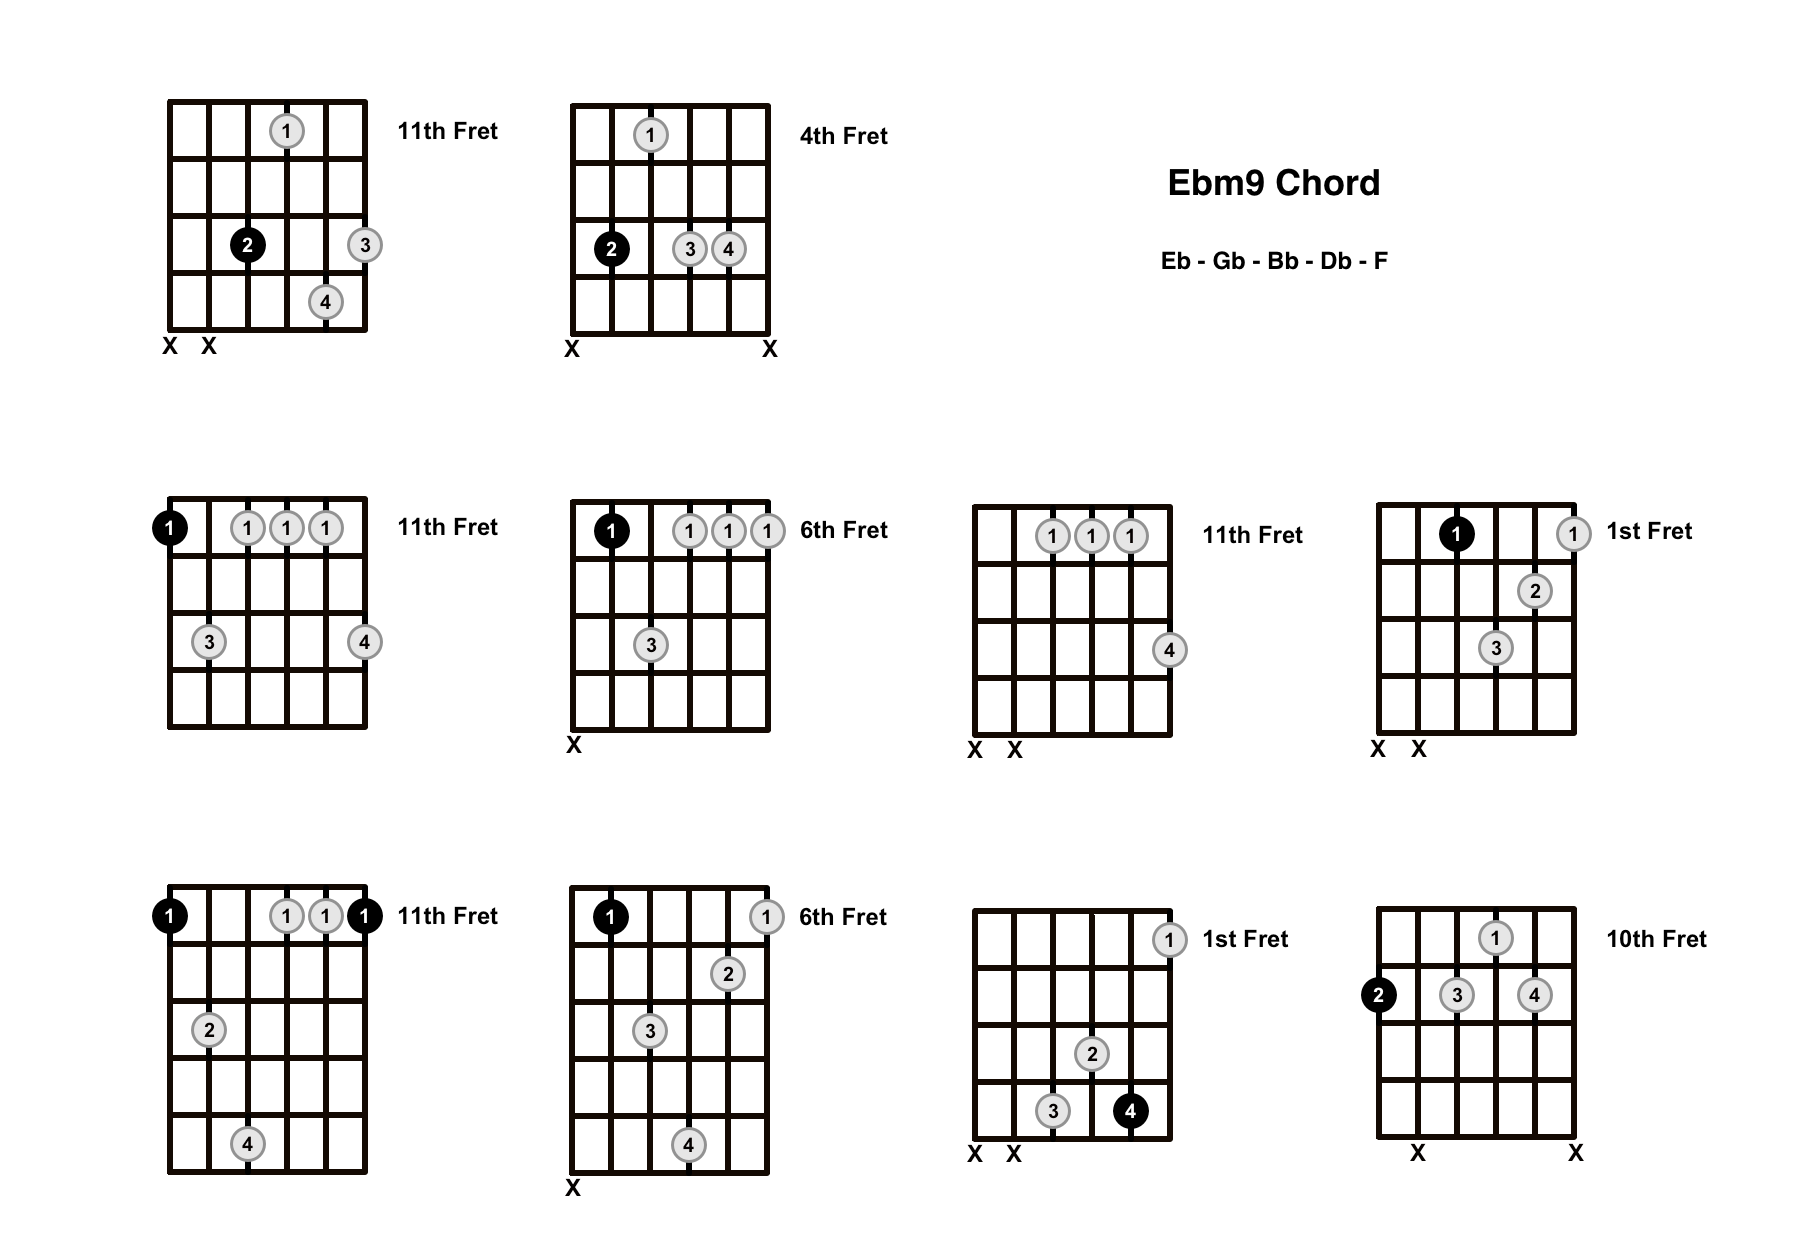 Ebm9 Chord On The Guitar (E Flat Minor 9) – Diagrams, Finger Positions and Theory